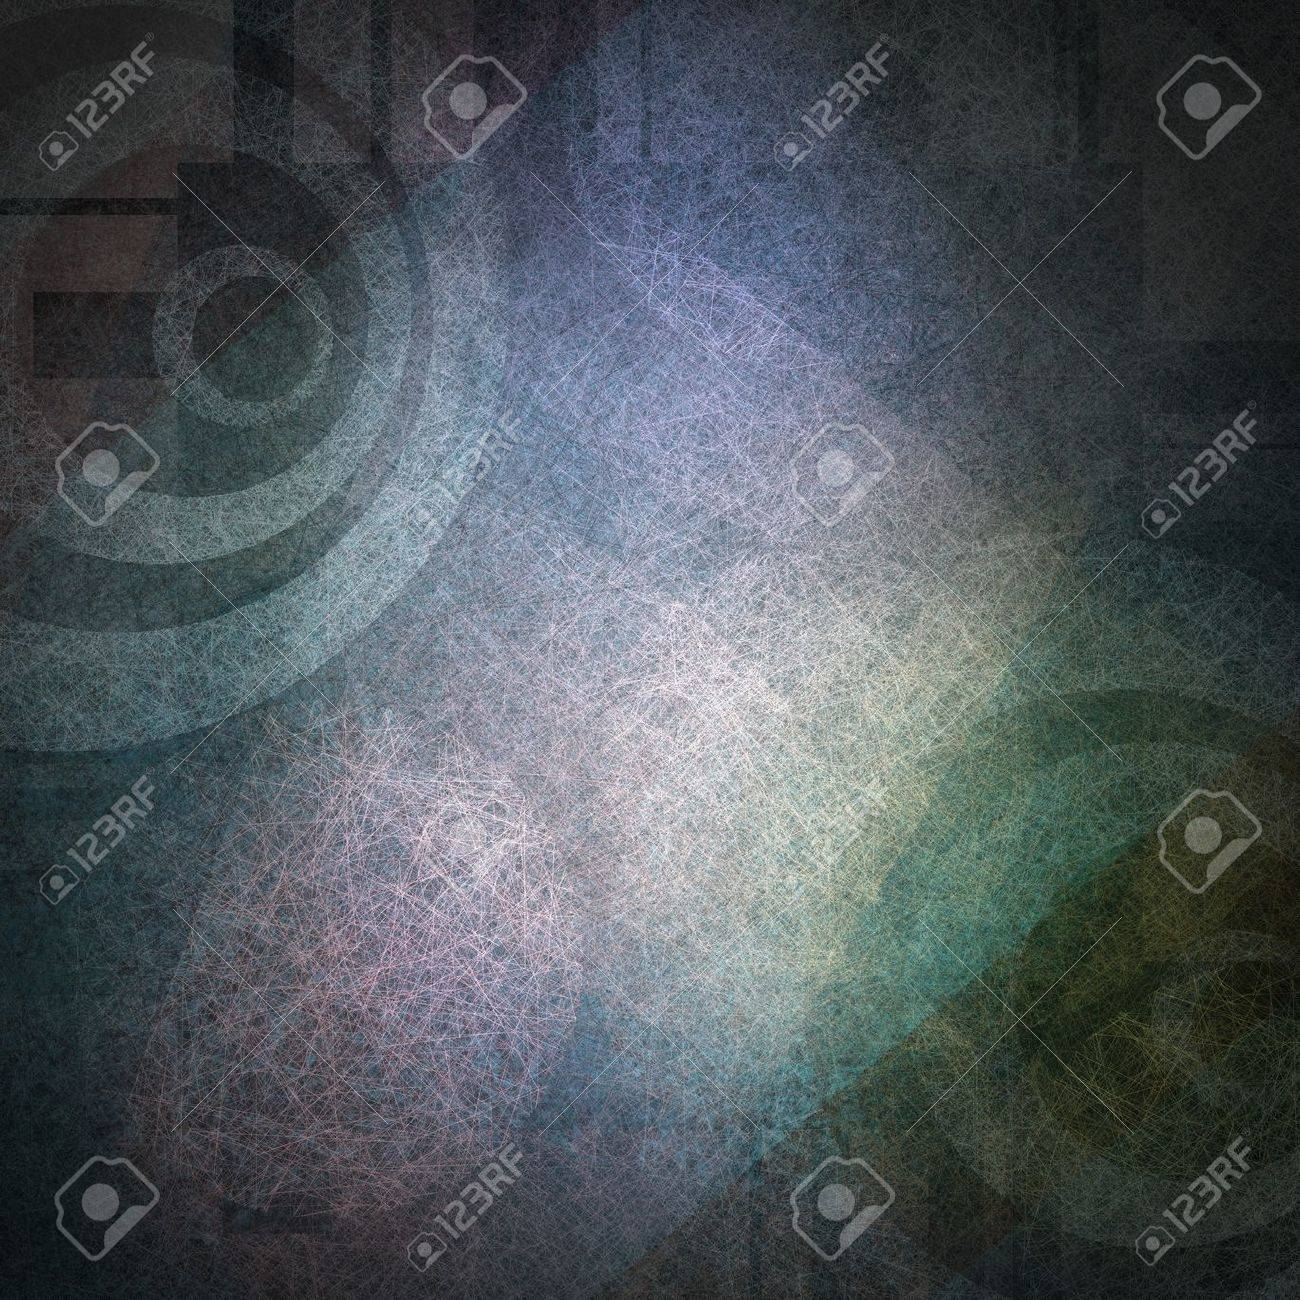 elegant abstract background of colorful shapes on blue background of white circle target striped pattern on vintage grunge background texture and white light for old brochure with urban modern art Stock Photo - 15308292